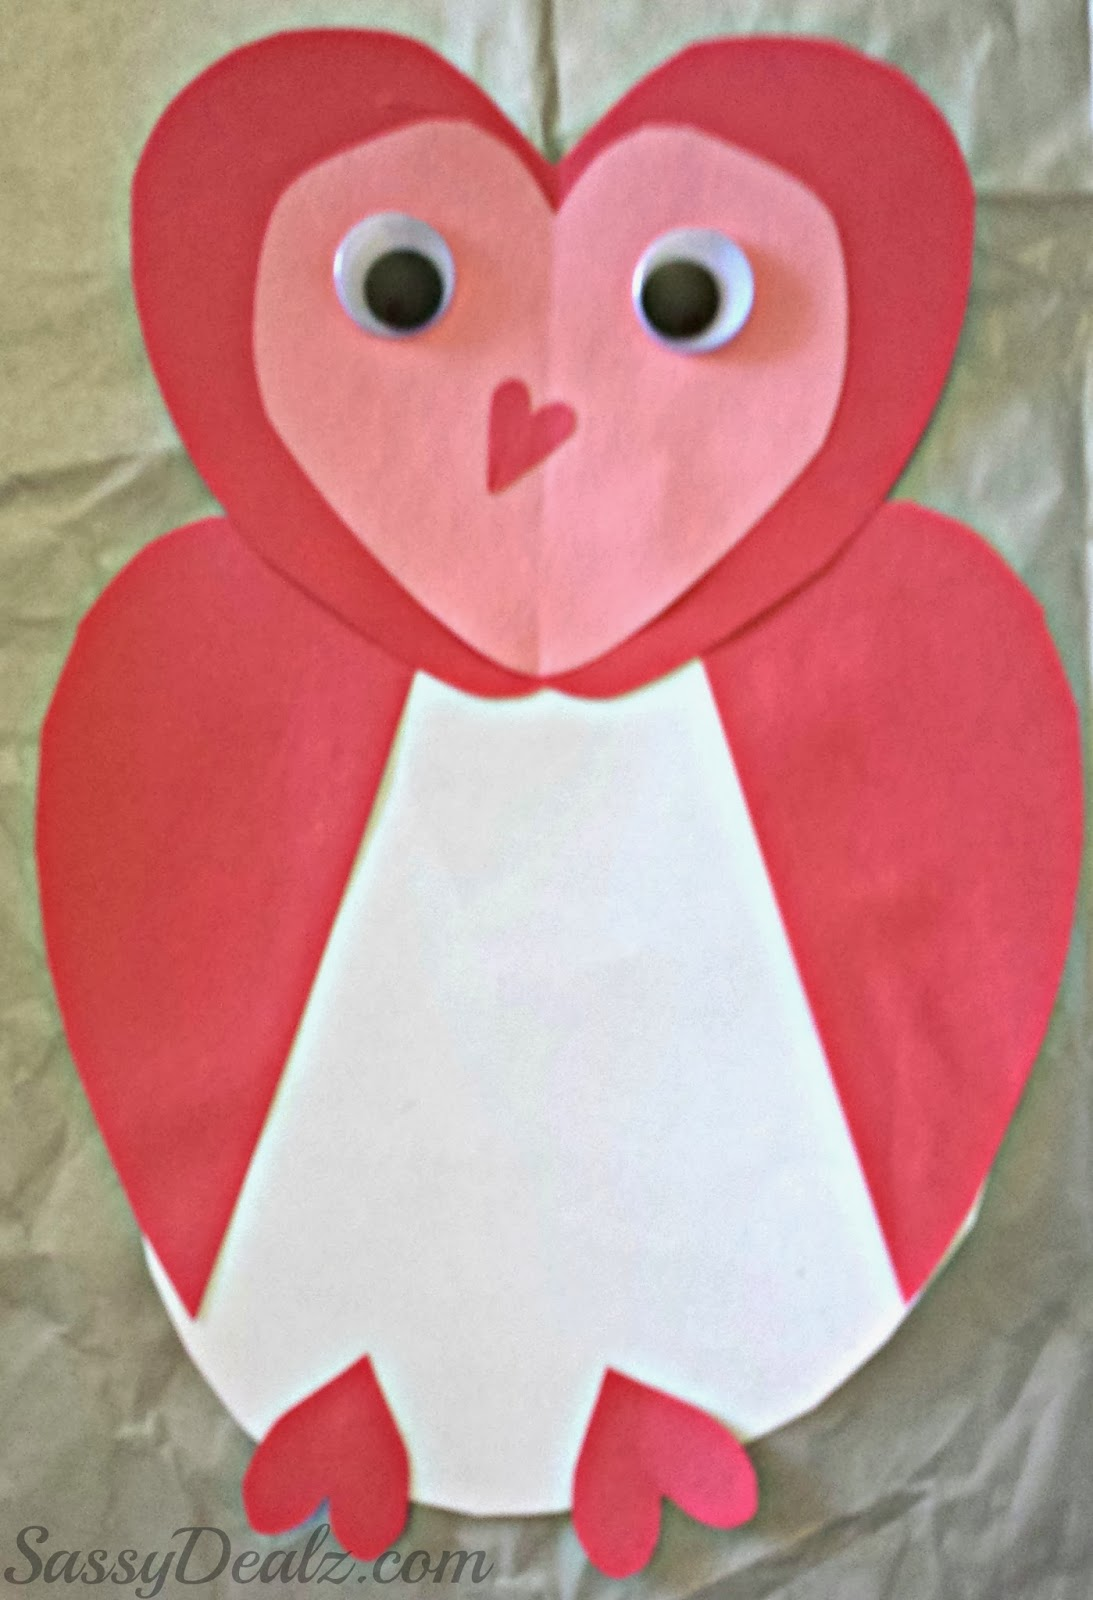 Owl valentines day card idea for kids crafty morning for Crafts for valentines day ideas